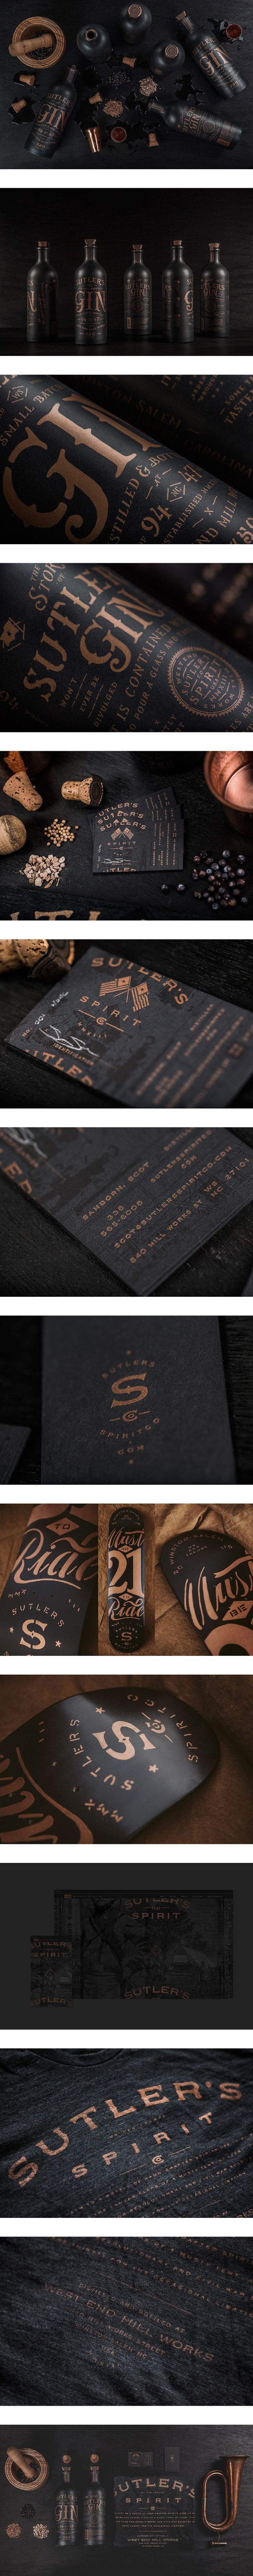 Nice use of copper with black for a luxury feel with some edginess to it  Sutler's Spirit Co.